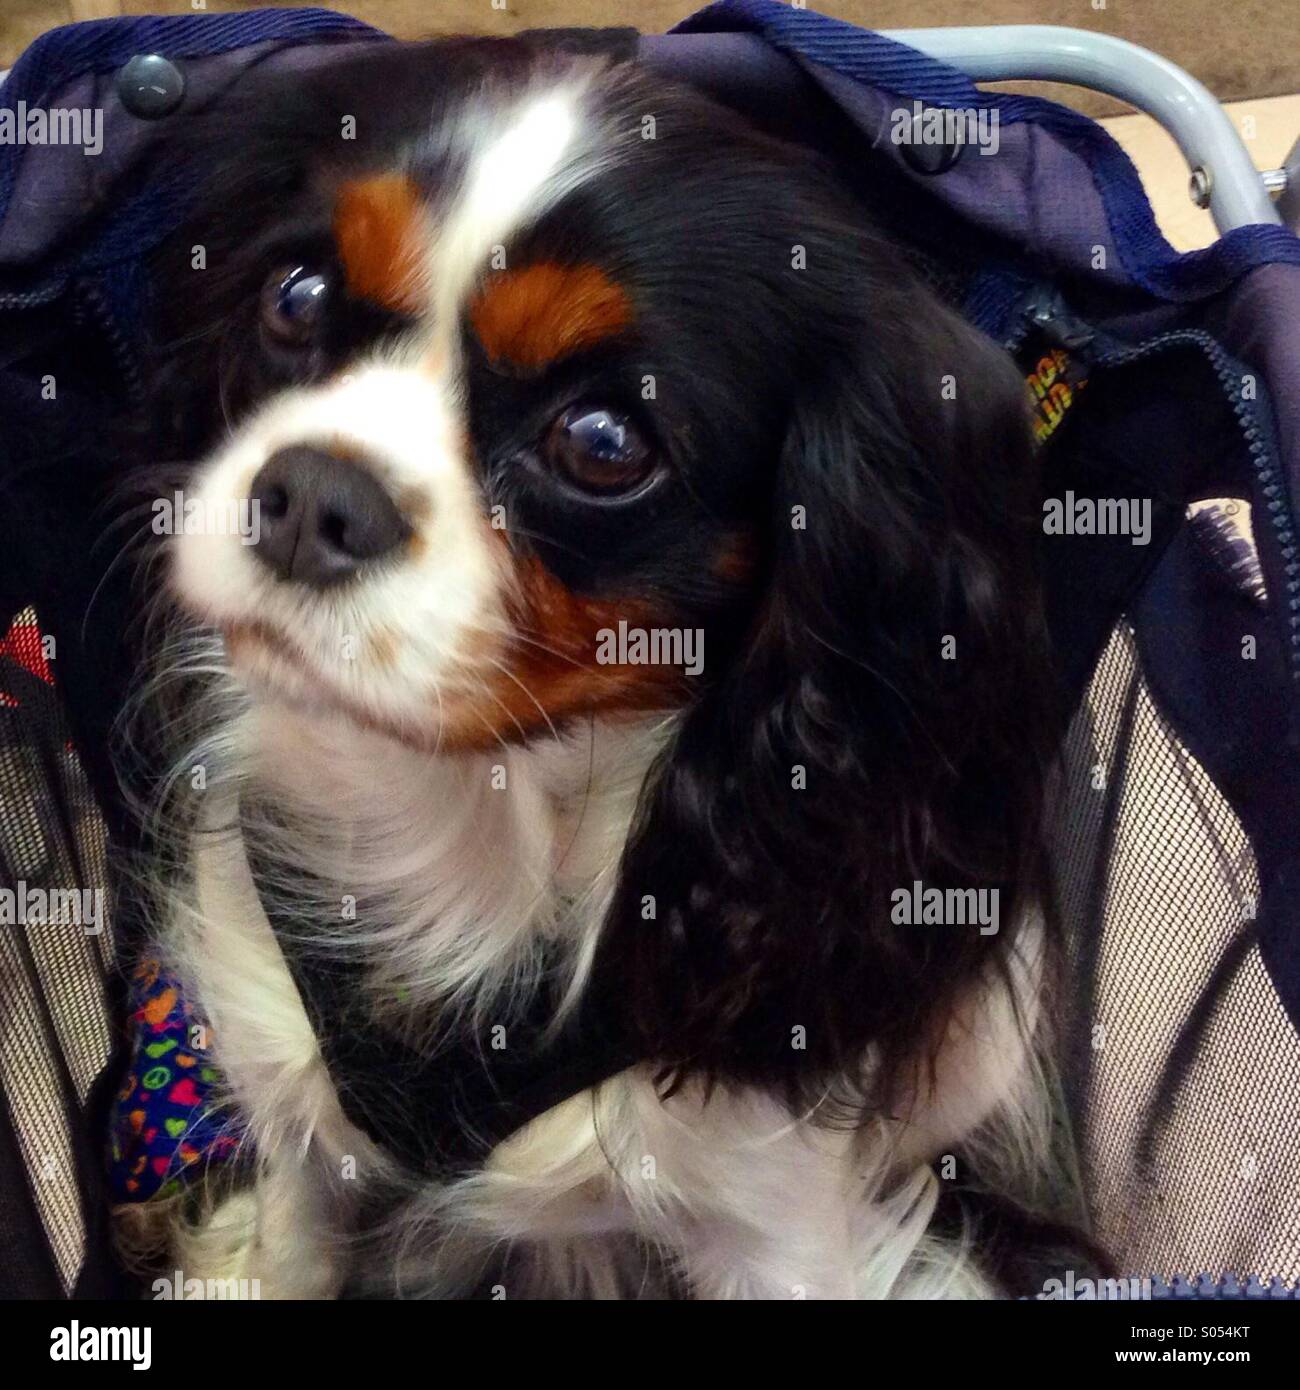 The CUTEST puppy! In a buggy with mom shopping at Macy's! - Stock Image